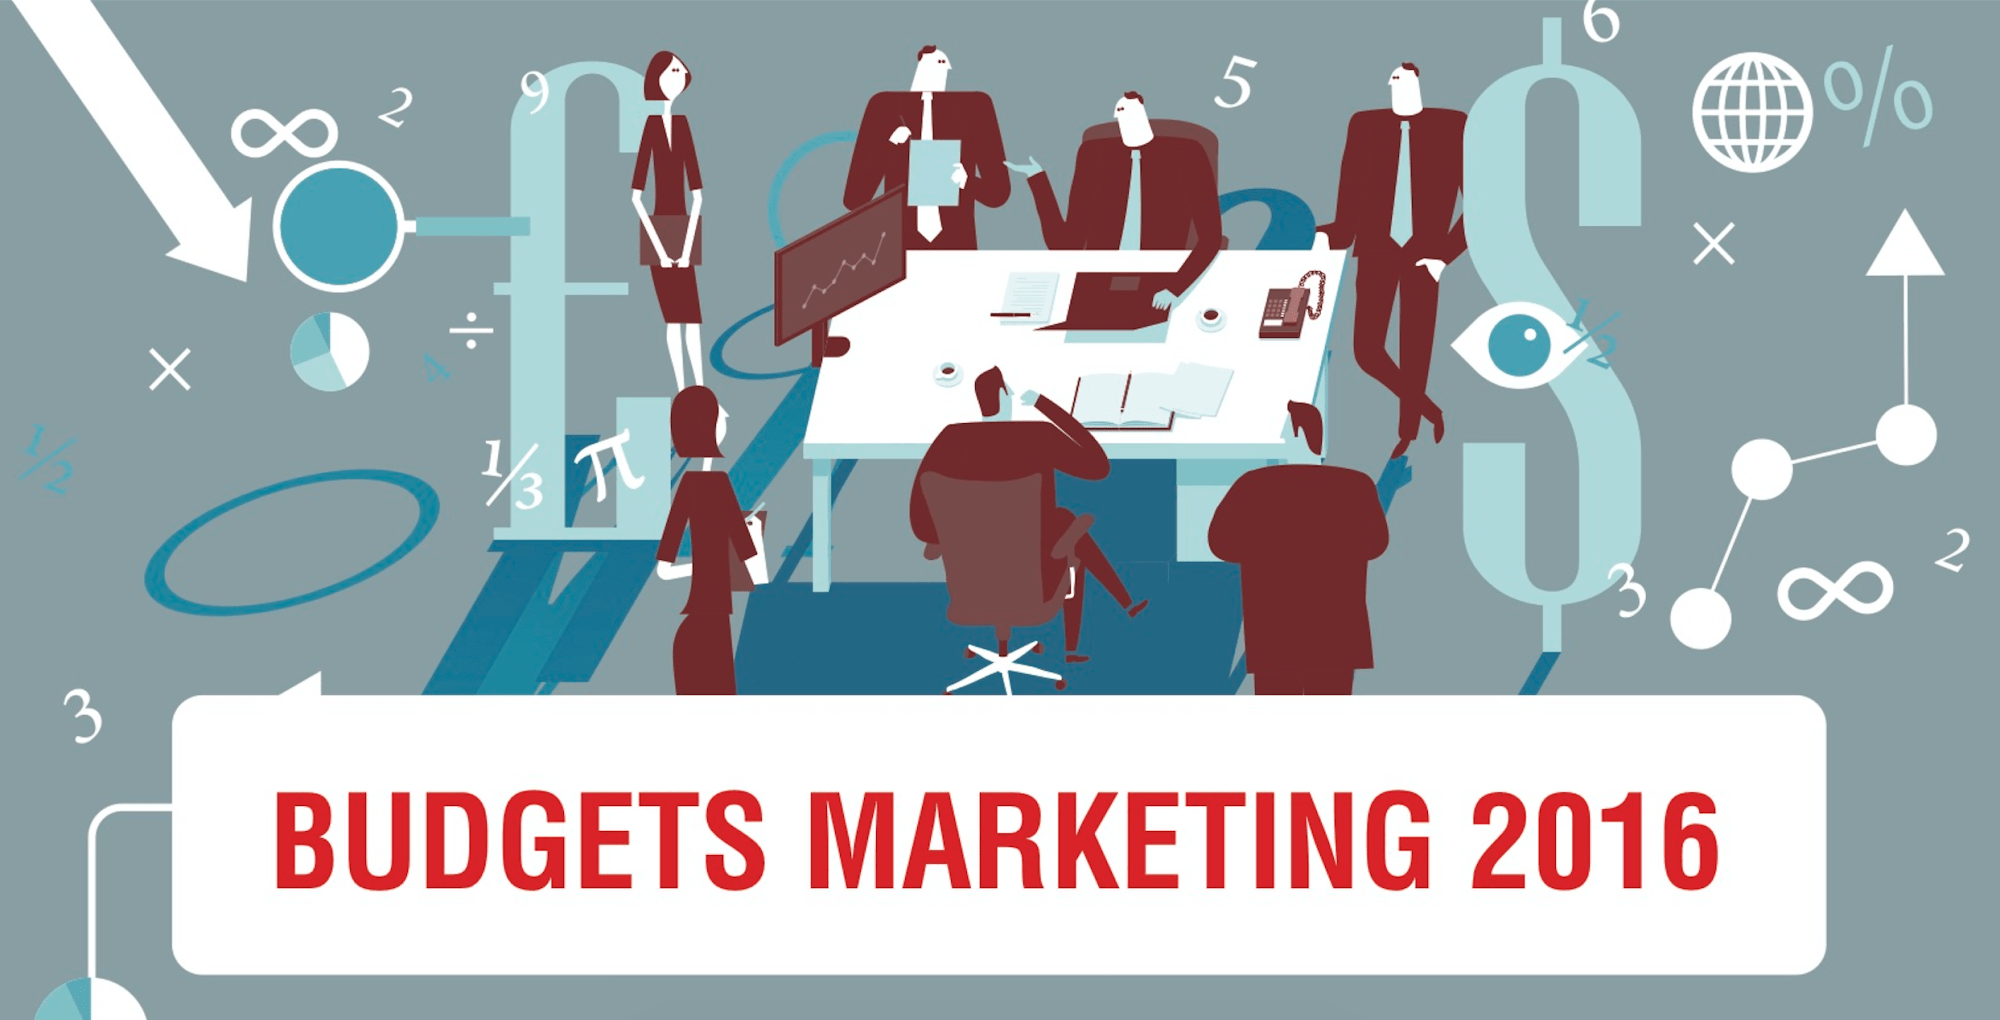 Tendances marketing 2016